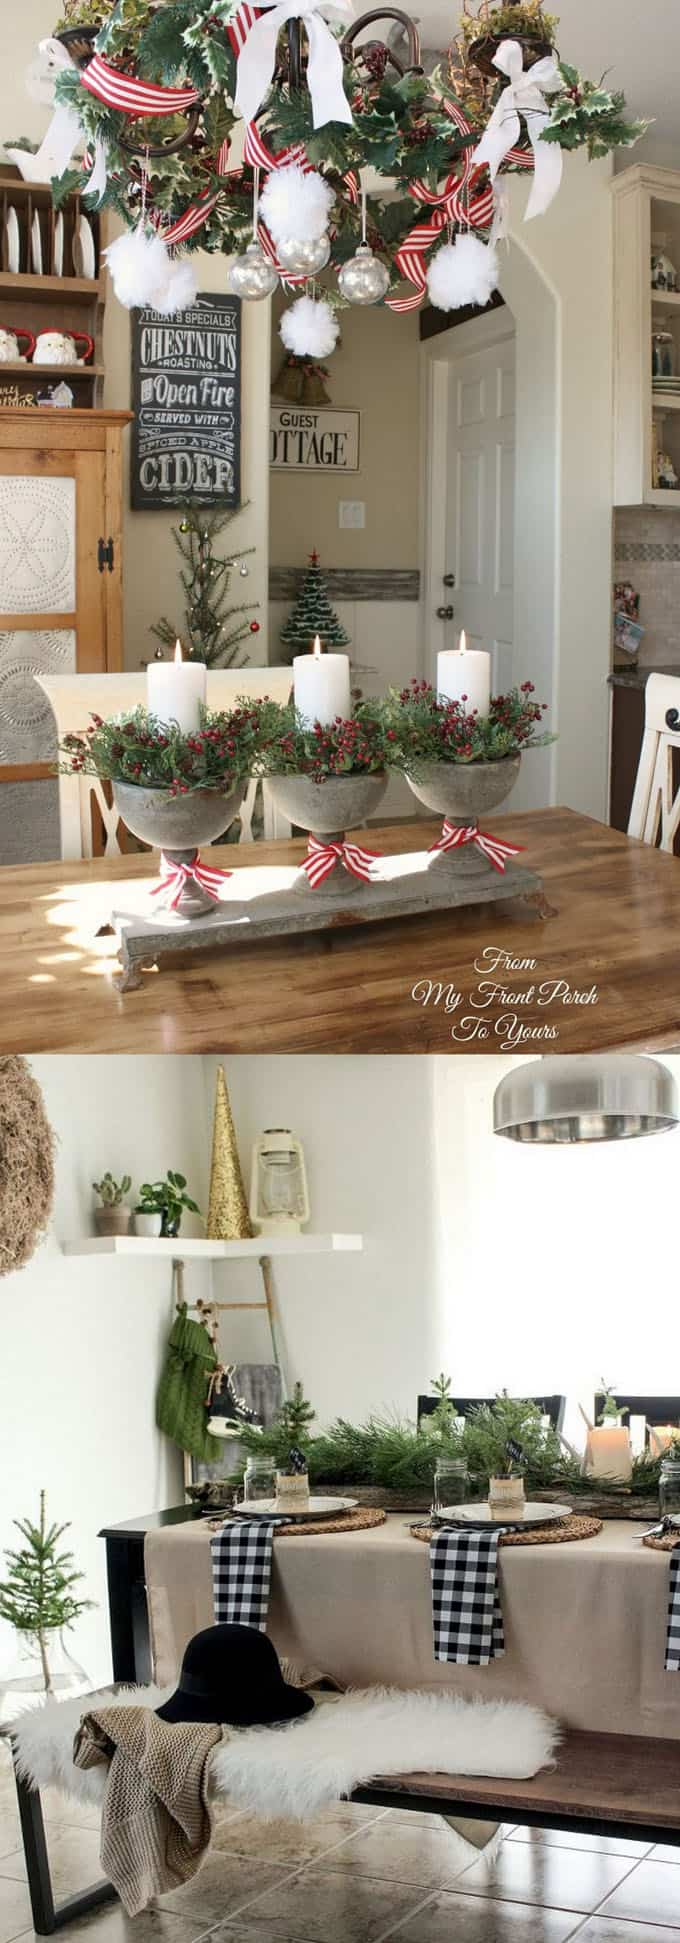 ideas for decorating my living room christmas complete set 100 favorite every in your home look ways to add festive decorations not just on a kitchen table but also above and around the via from front porch yours